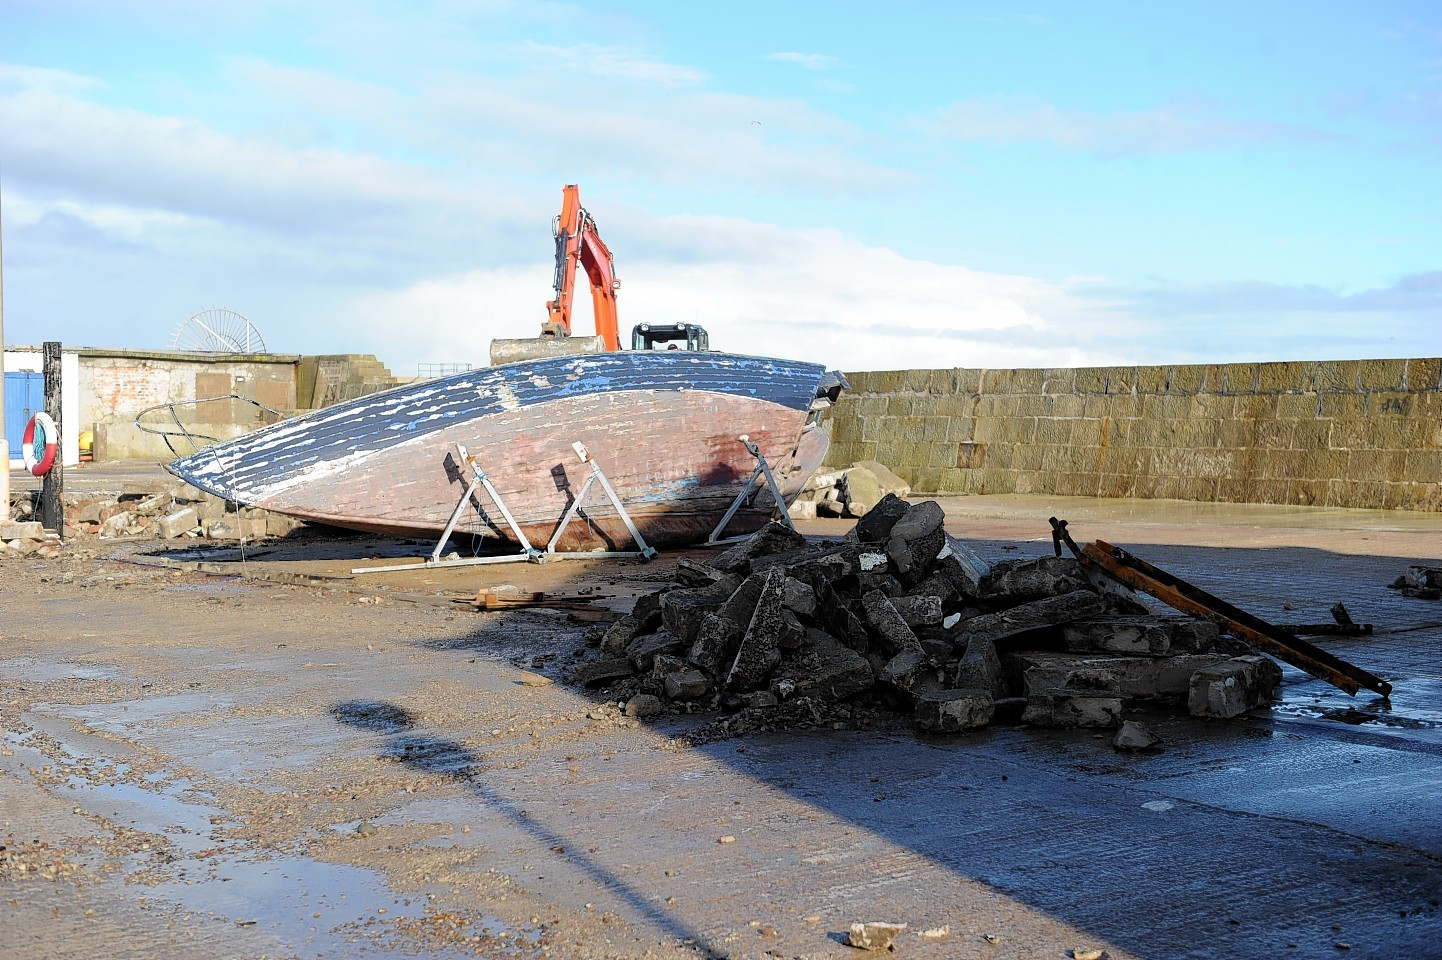 The flooding clean up begins at Lossiemouth where a boat was knocked over by the waves